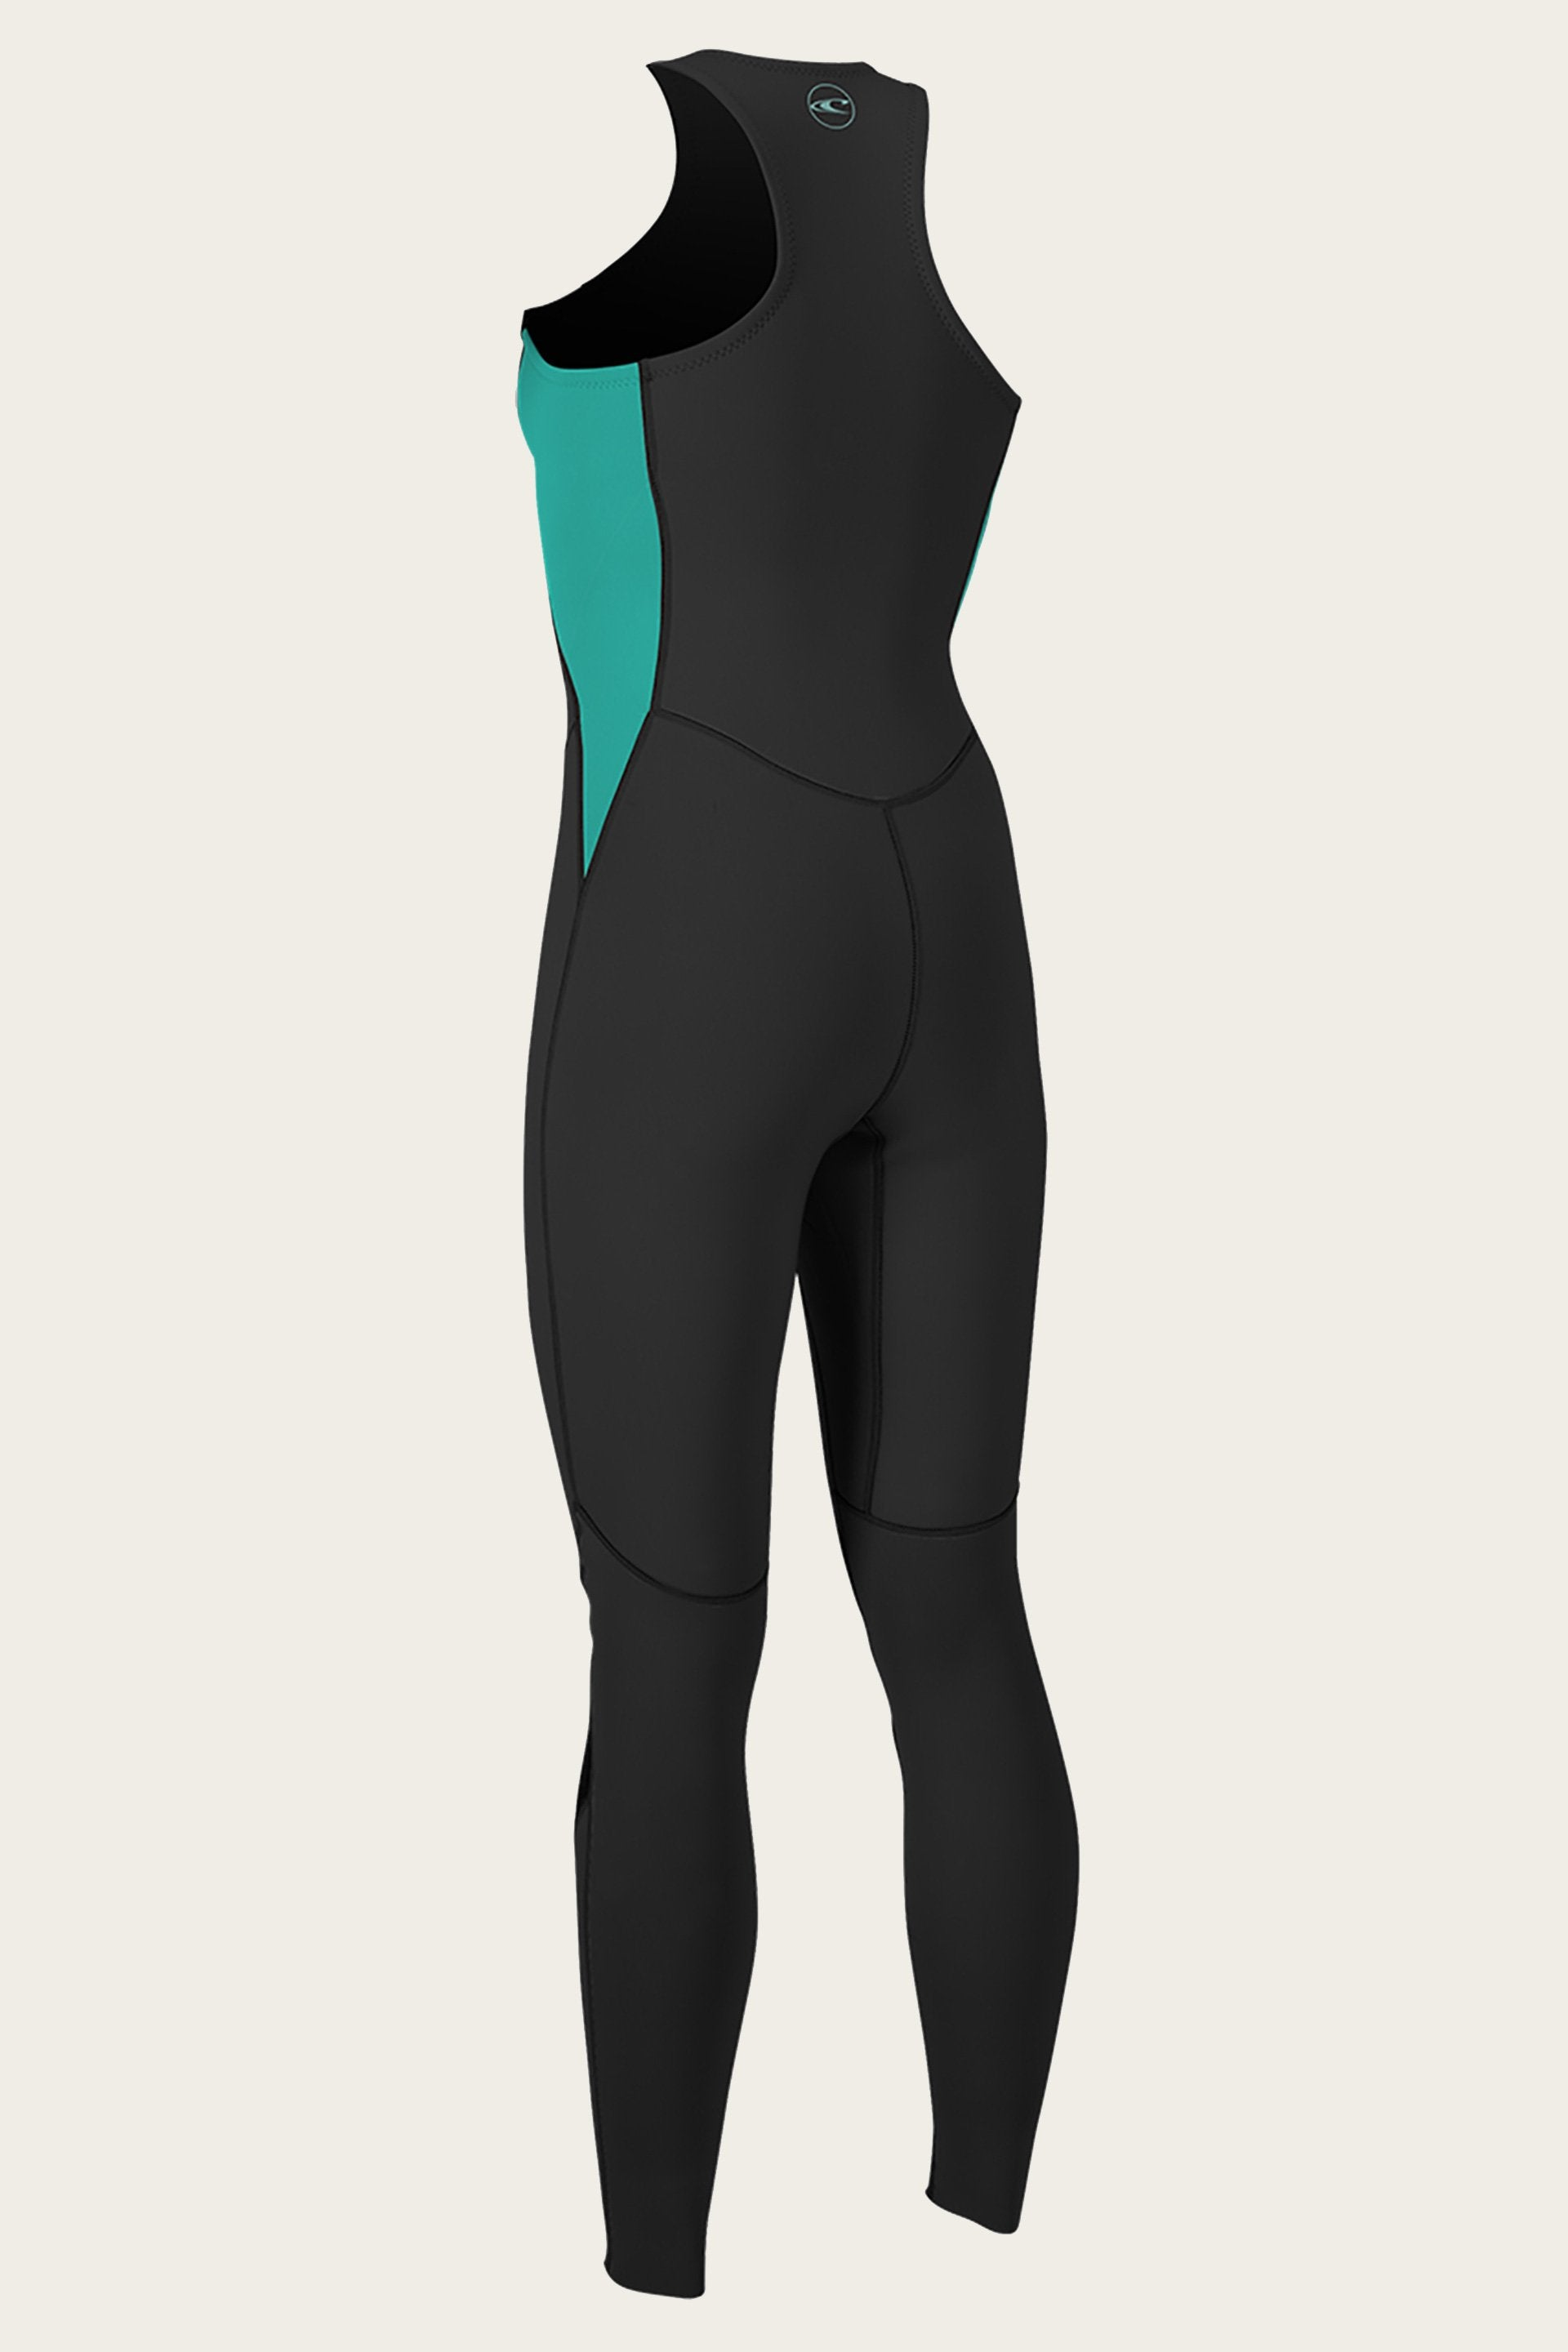 O'Neill Women's Reactor-2 1.5mm Sleeveless Wetsuit